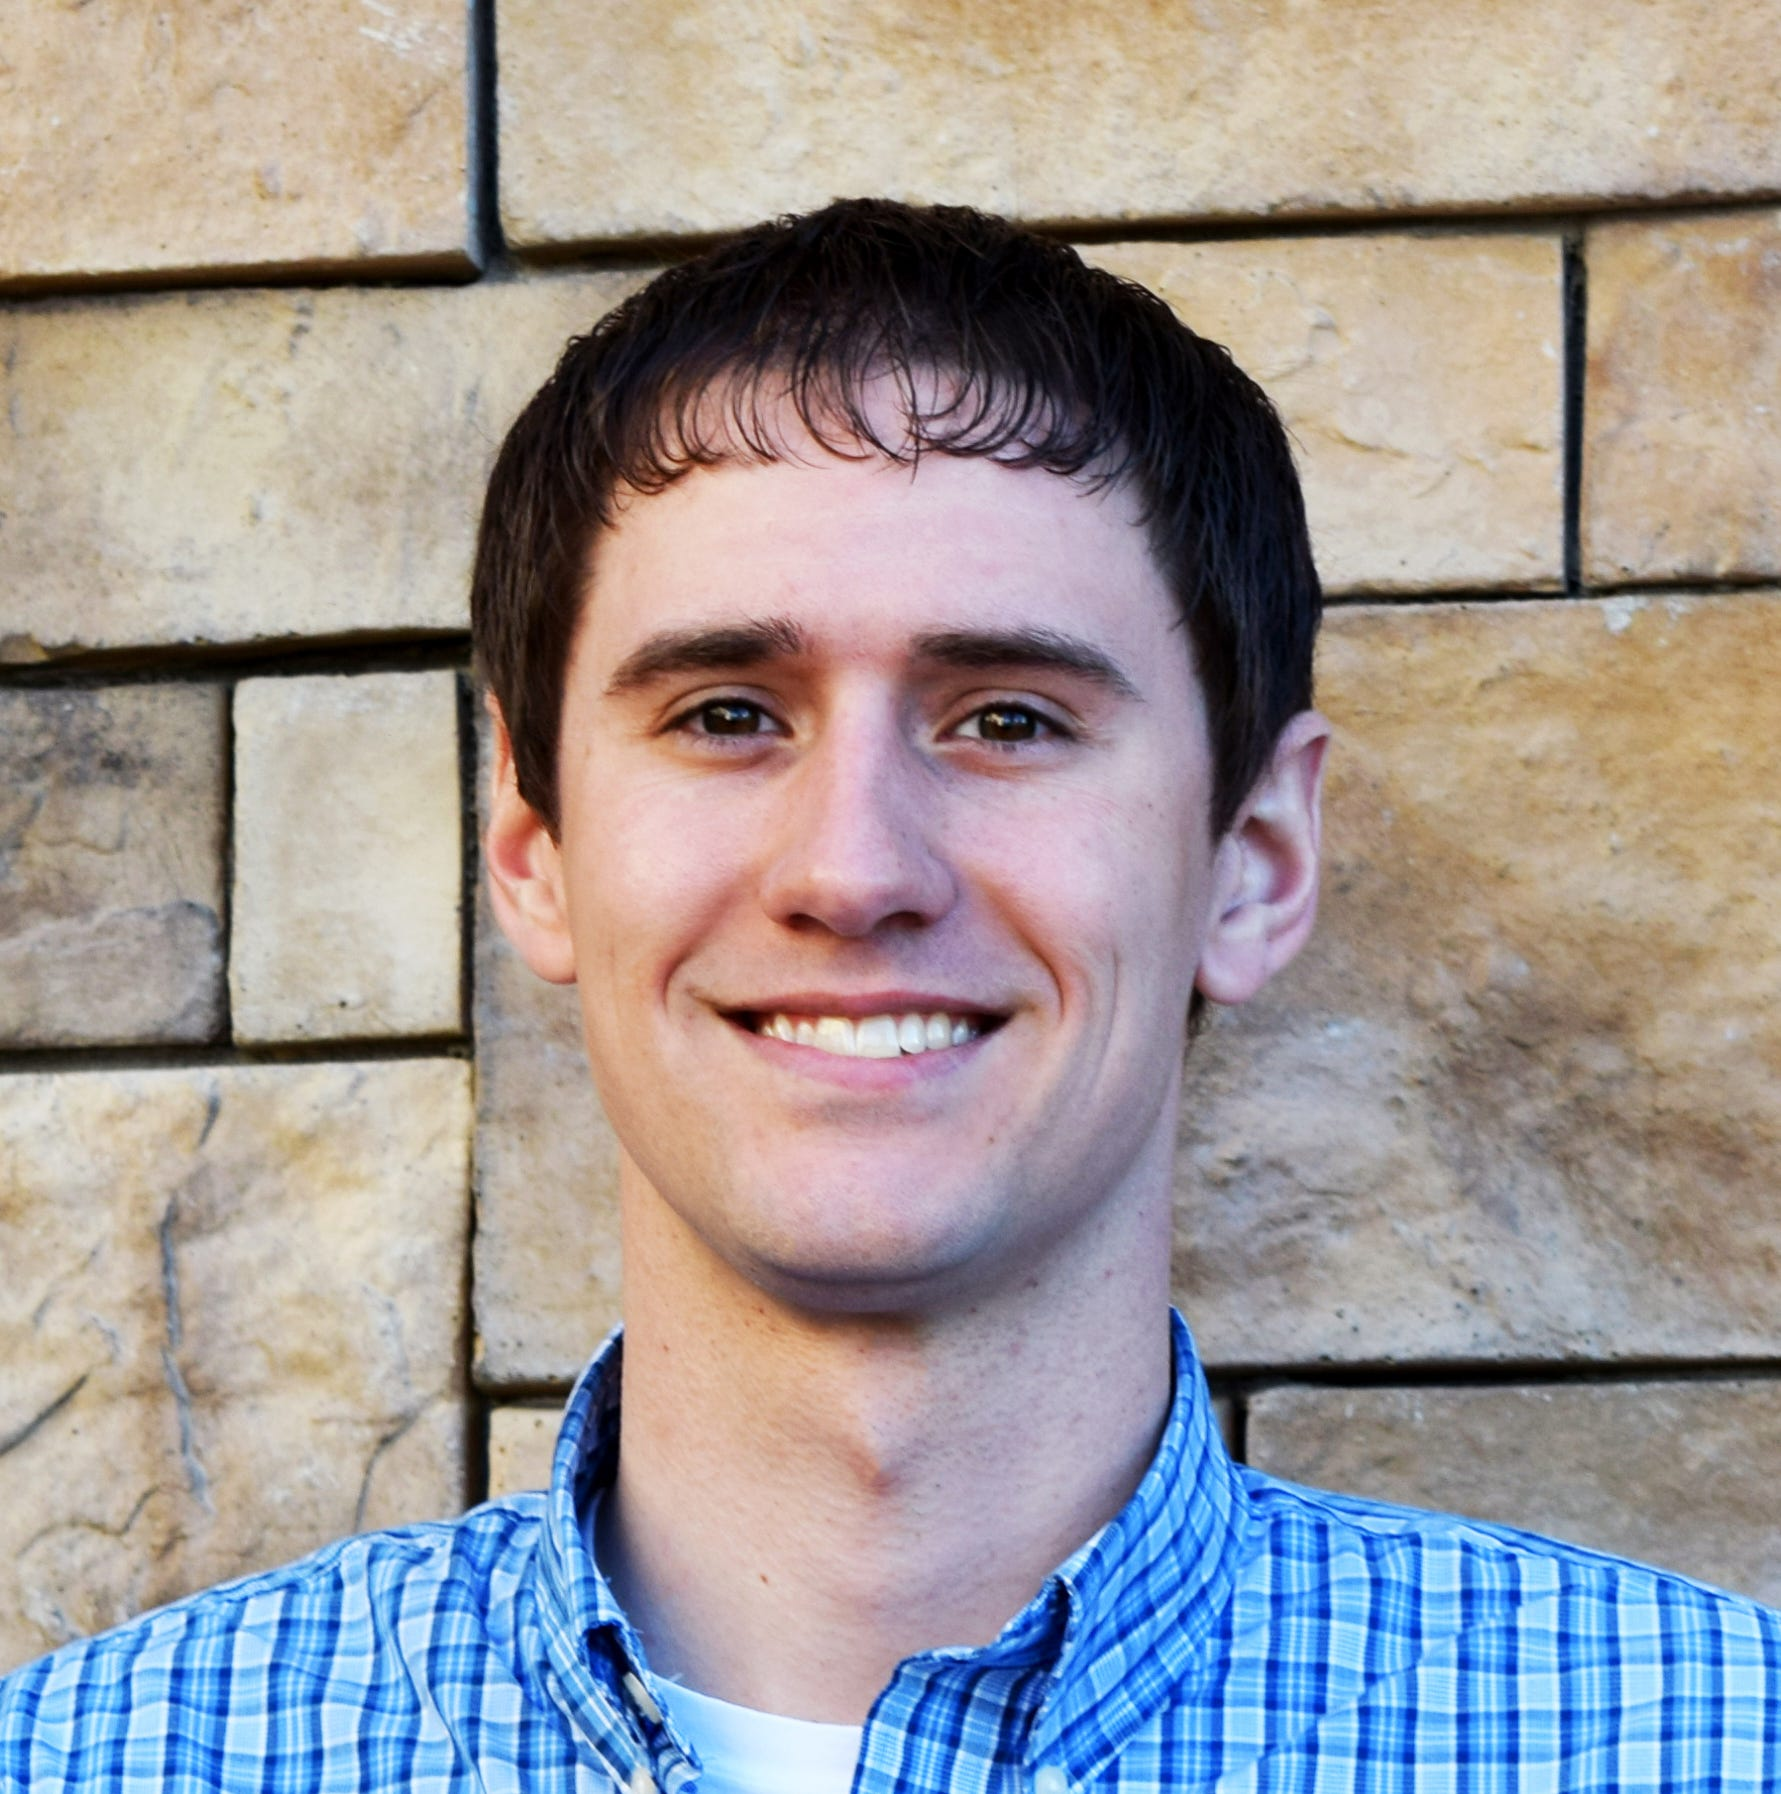 Brady Lassila, a Great Falls, Montana young professional